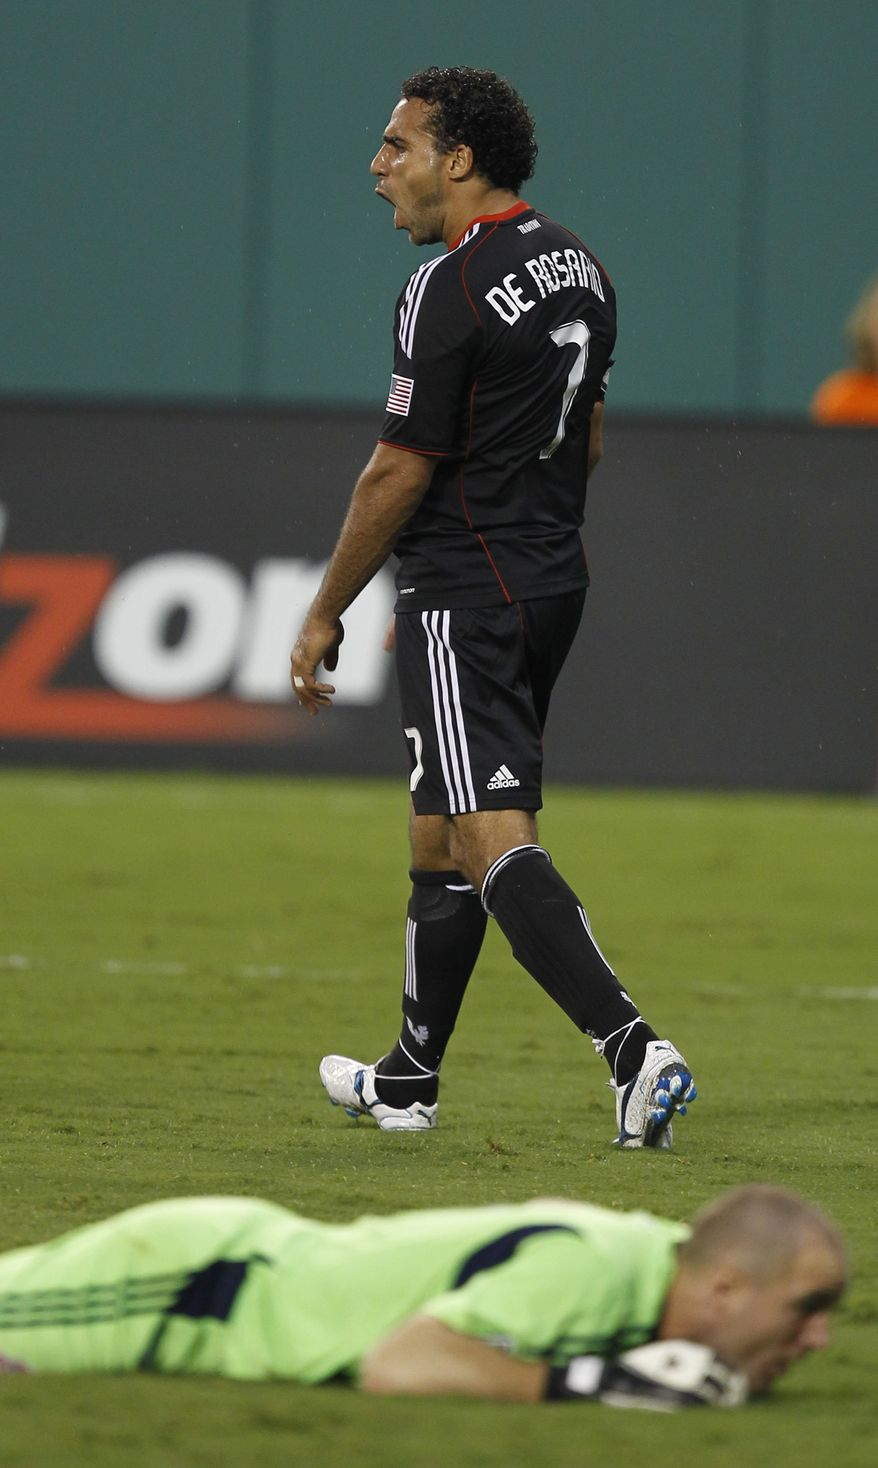 D.C. United's Dwayne De Rosario (7) celebrates after scoring his second goal of three goals against Toronto FC. The game ended in a 3-3 tie after Rosario scored a penalty kick in the 88th minute. (AP Photo/Luis M. Alvarez)